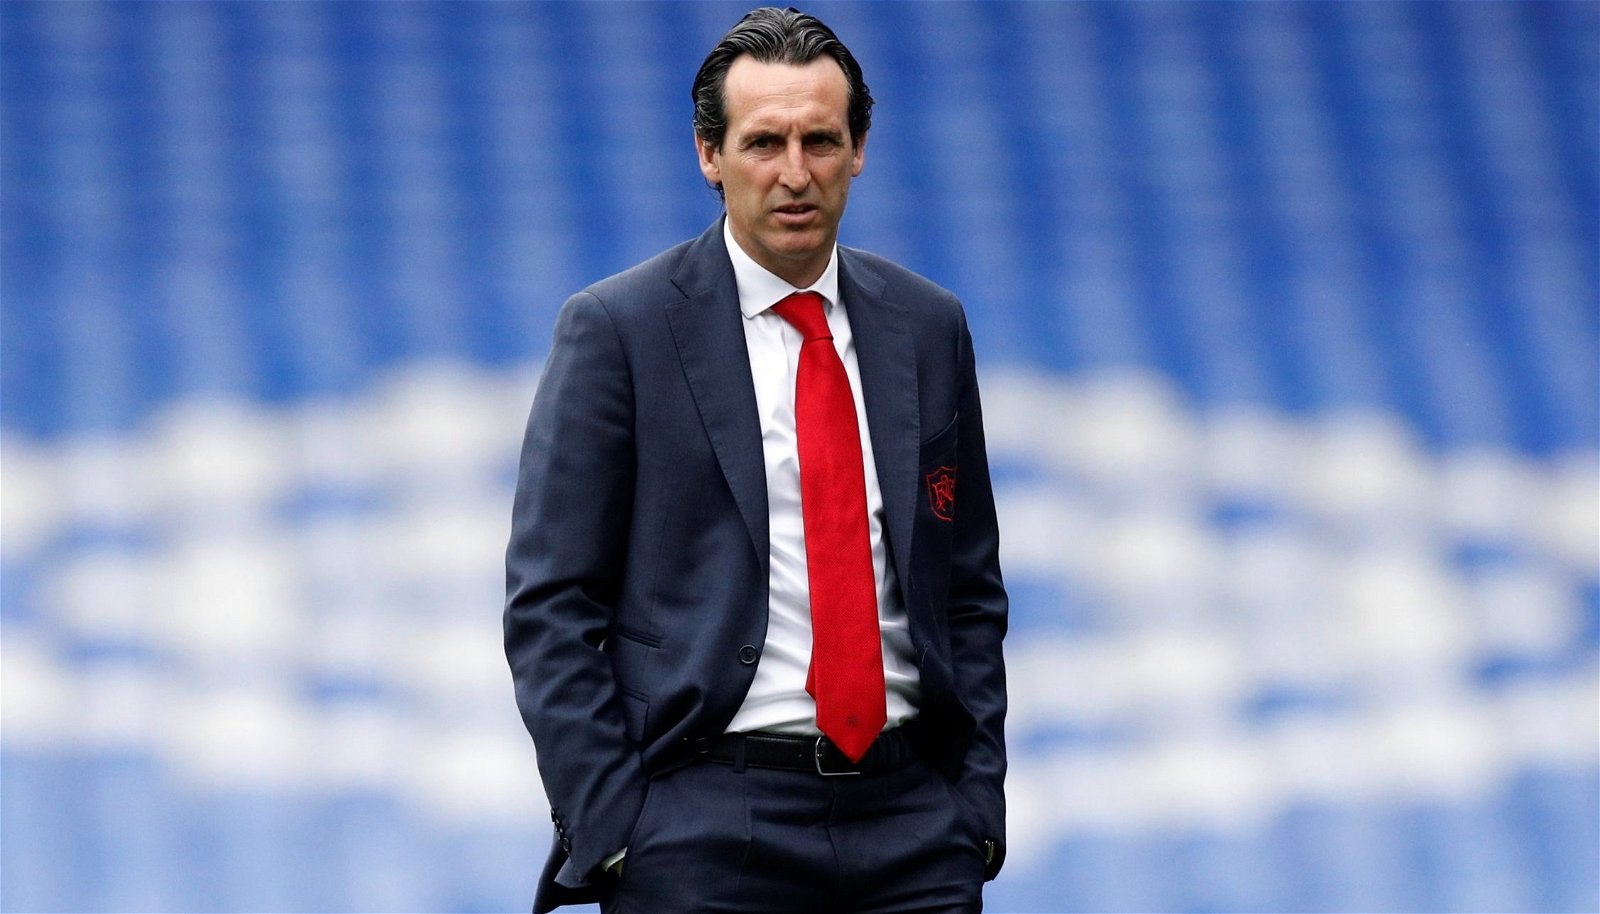 Arsenal manager Unai Emery on pitch prior to Everton clash